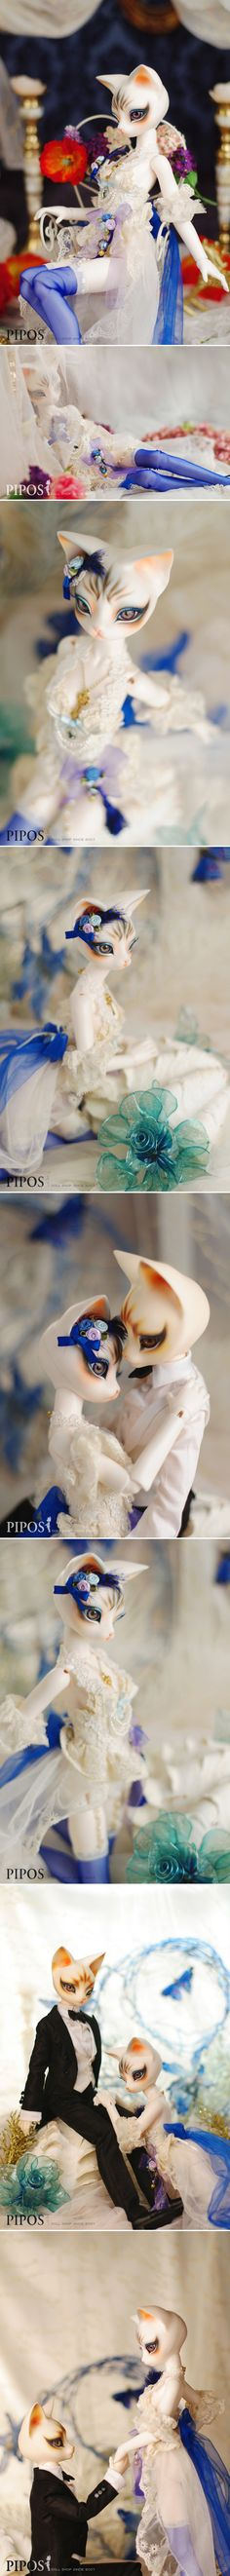 Pipos and Lee enchanted cat people dolls